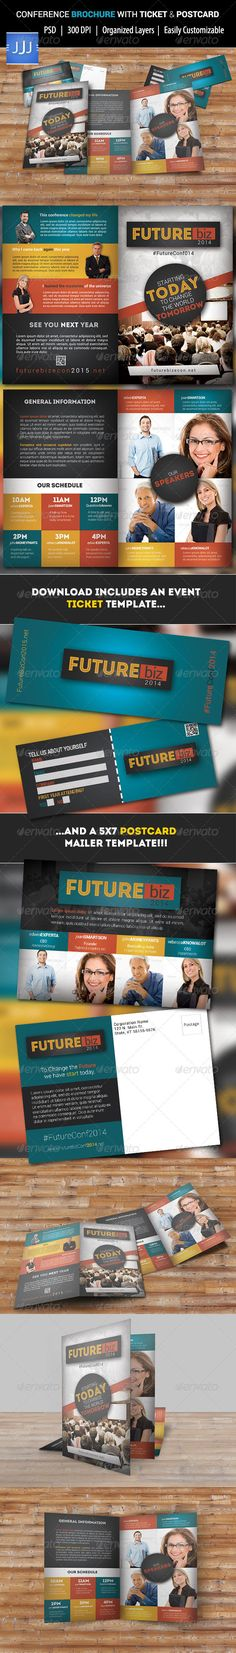 Expectations Conference Bifold Brochure Corporate brochure - conference flyer template